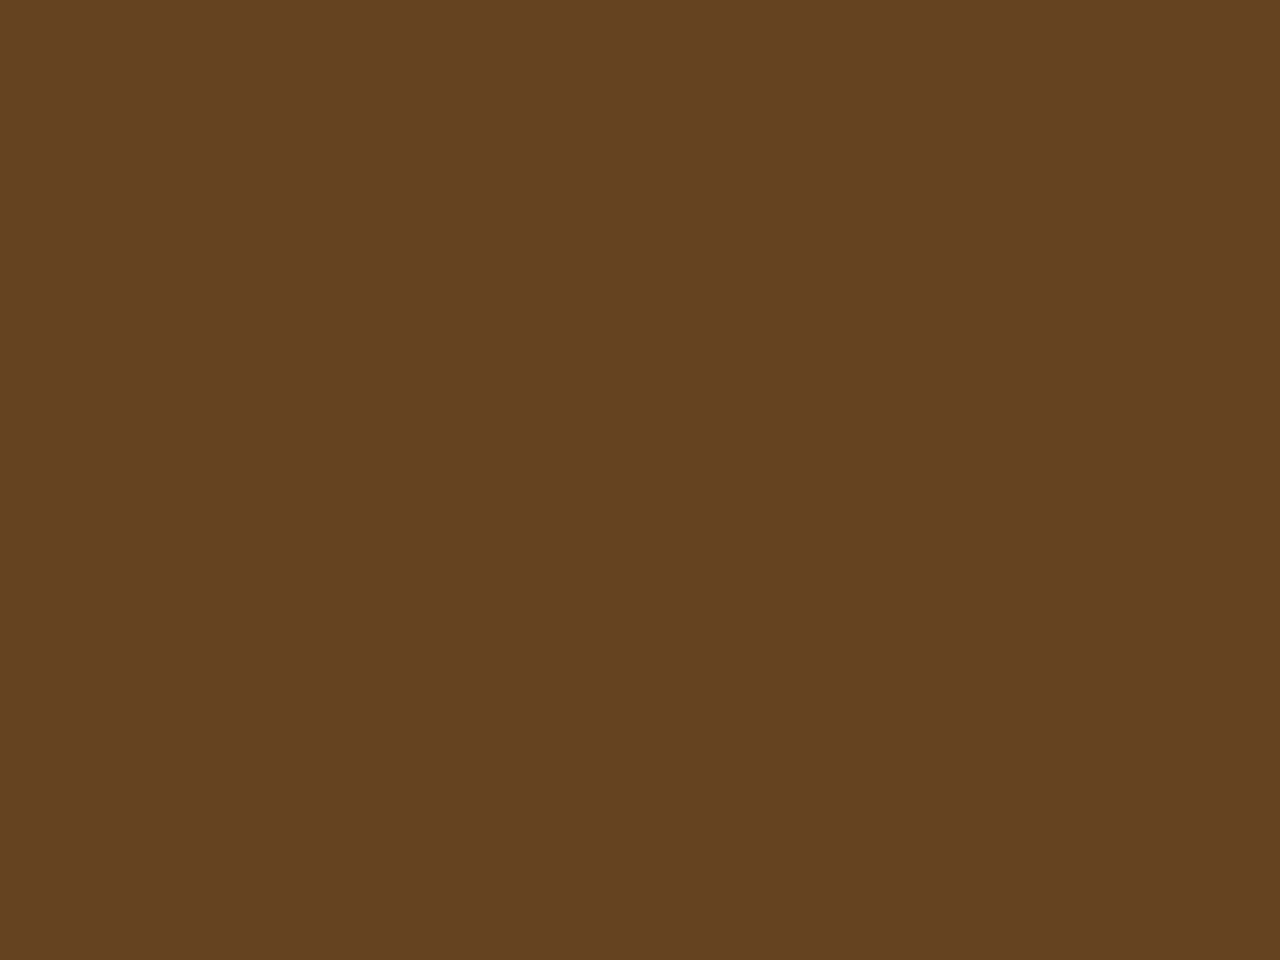 1280x960 Otter Brown Solid Color Background